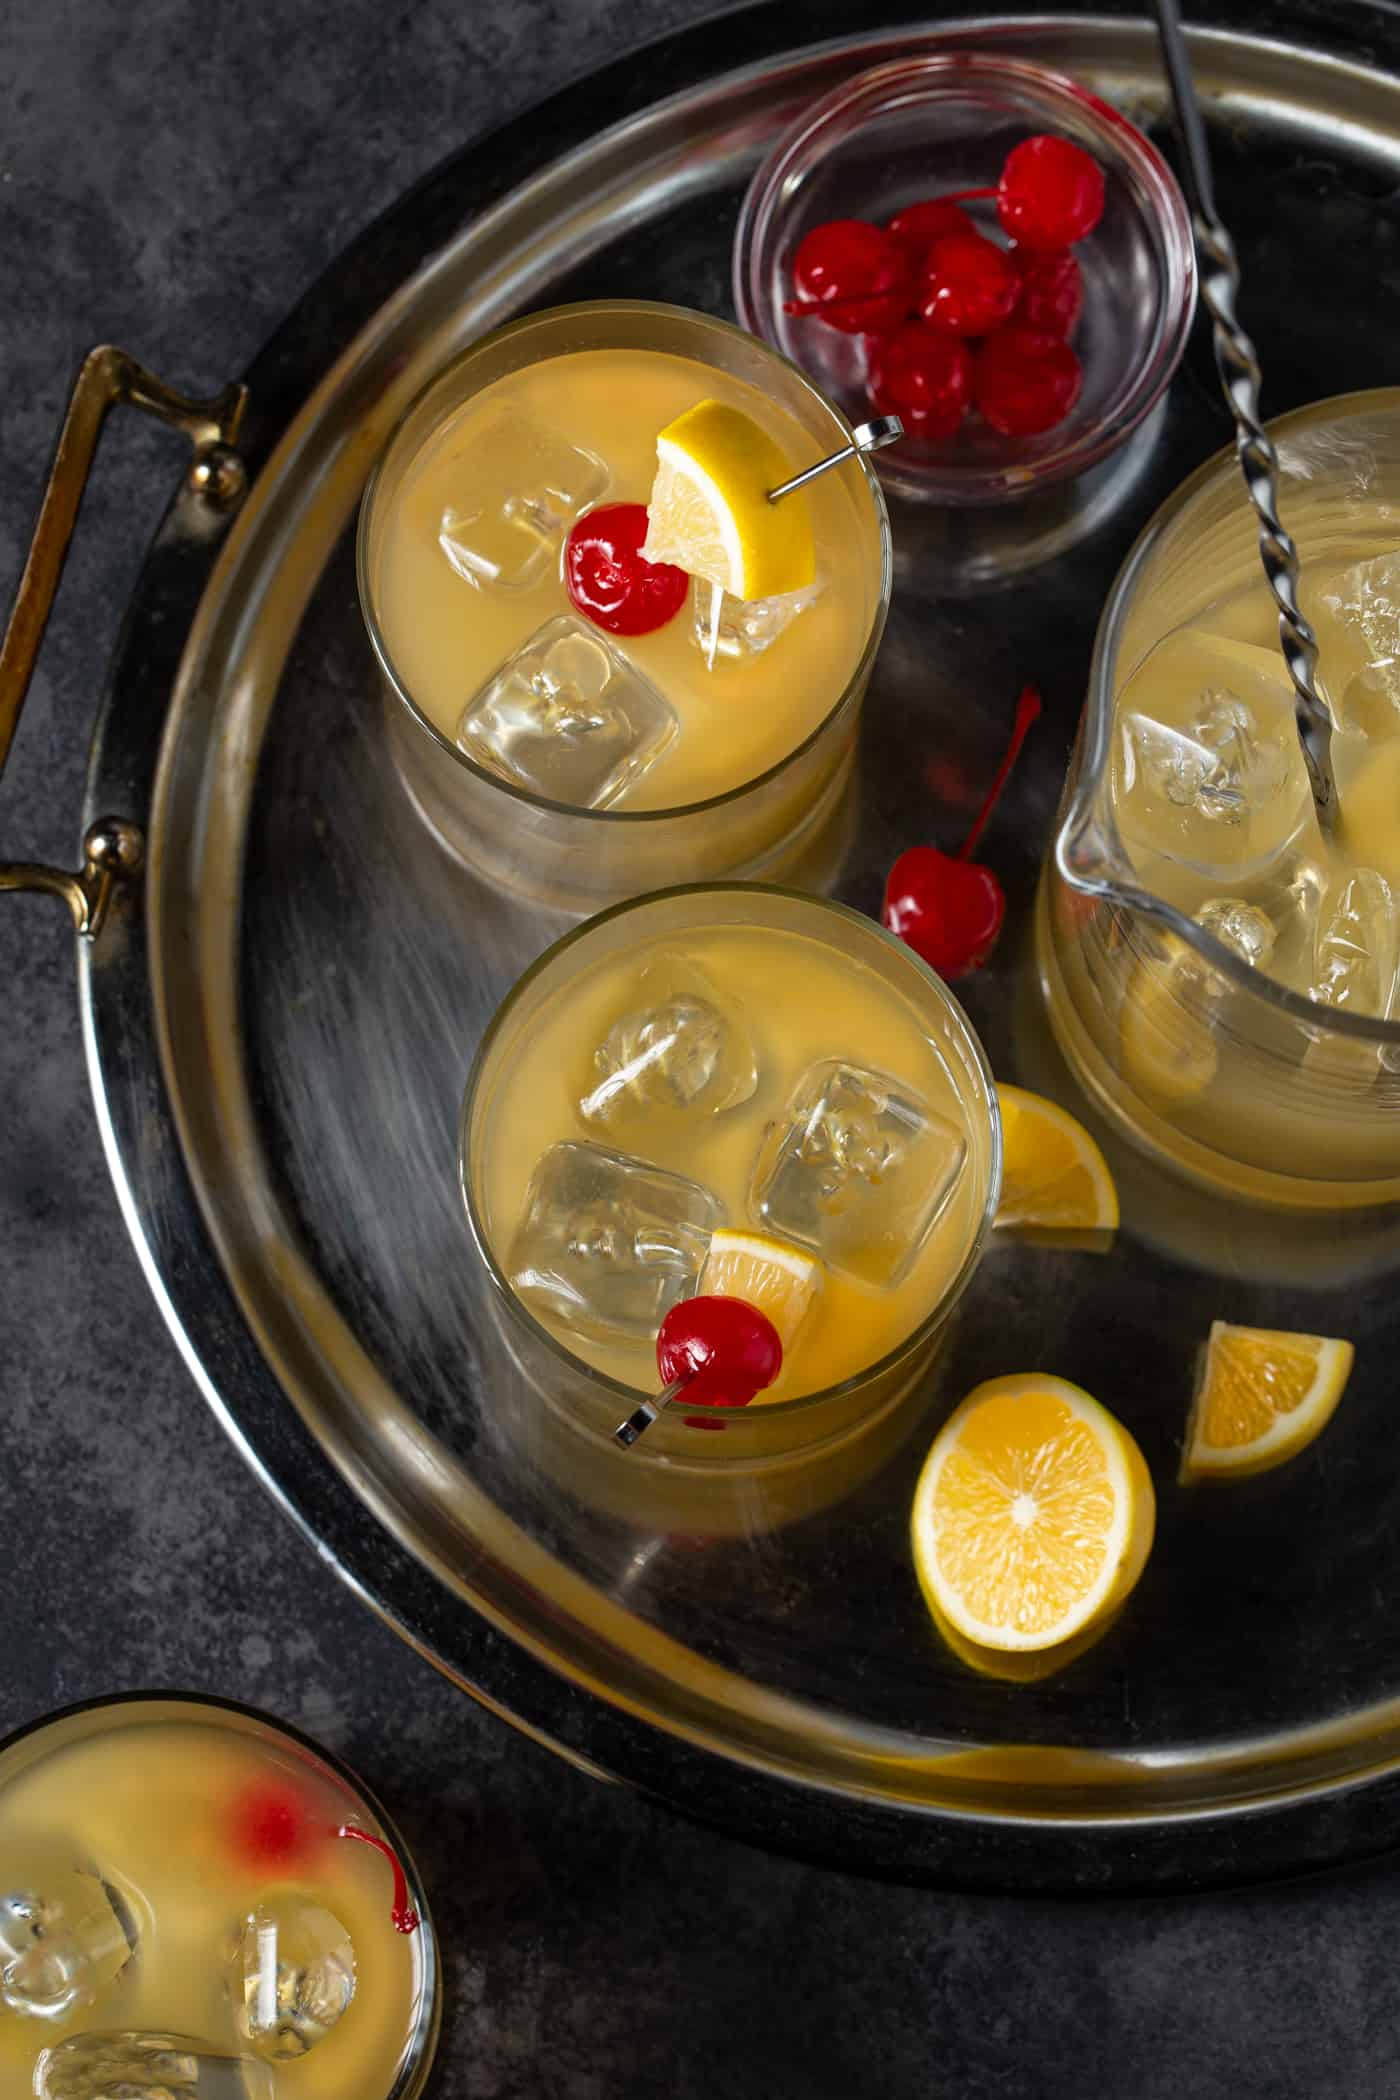 Platter filled with glasses of Whiskey Sours. Garnished with maraschino cherries and Meyer lemon slices.